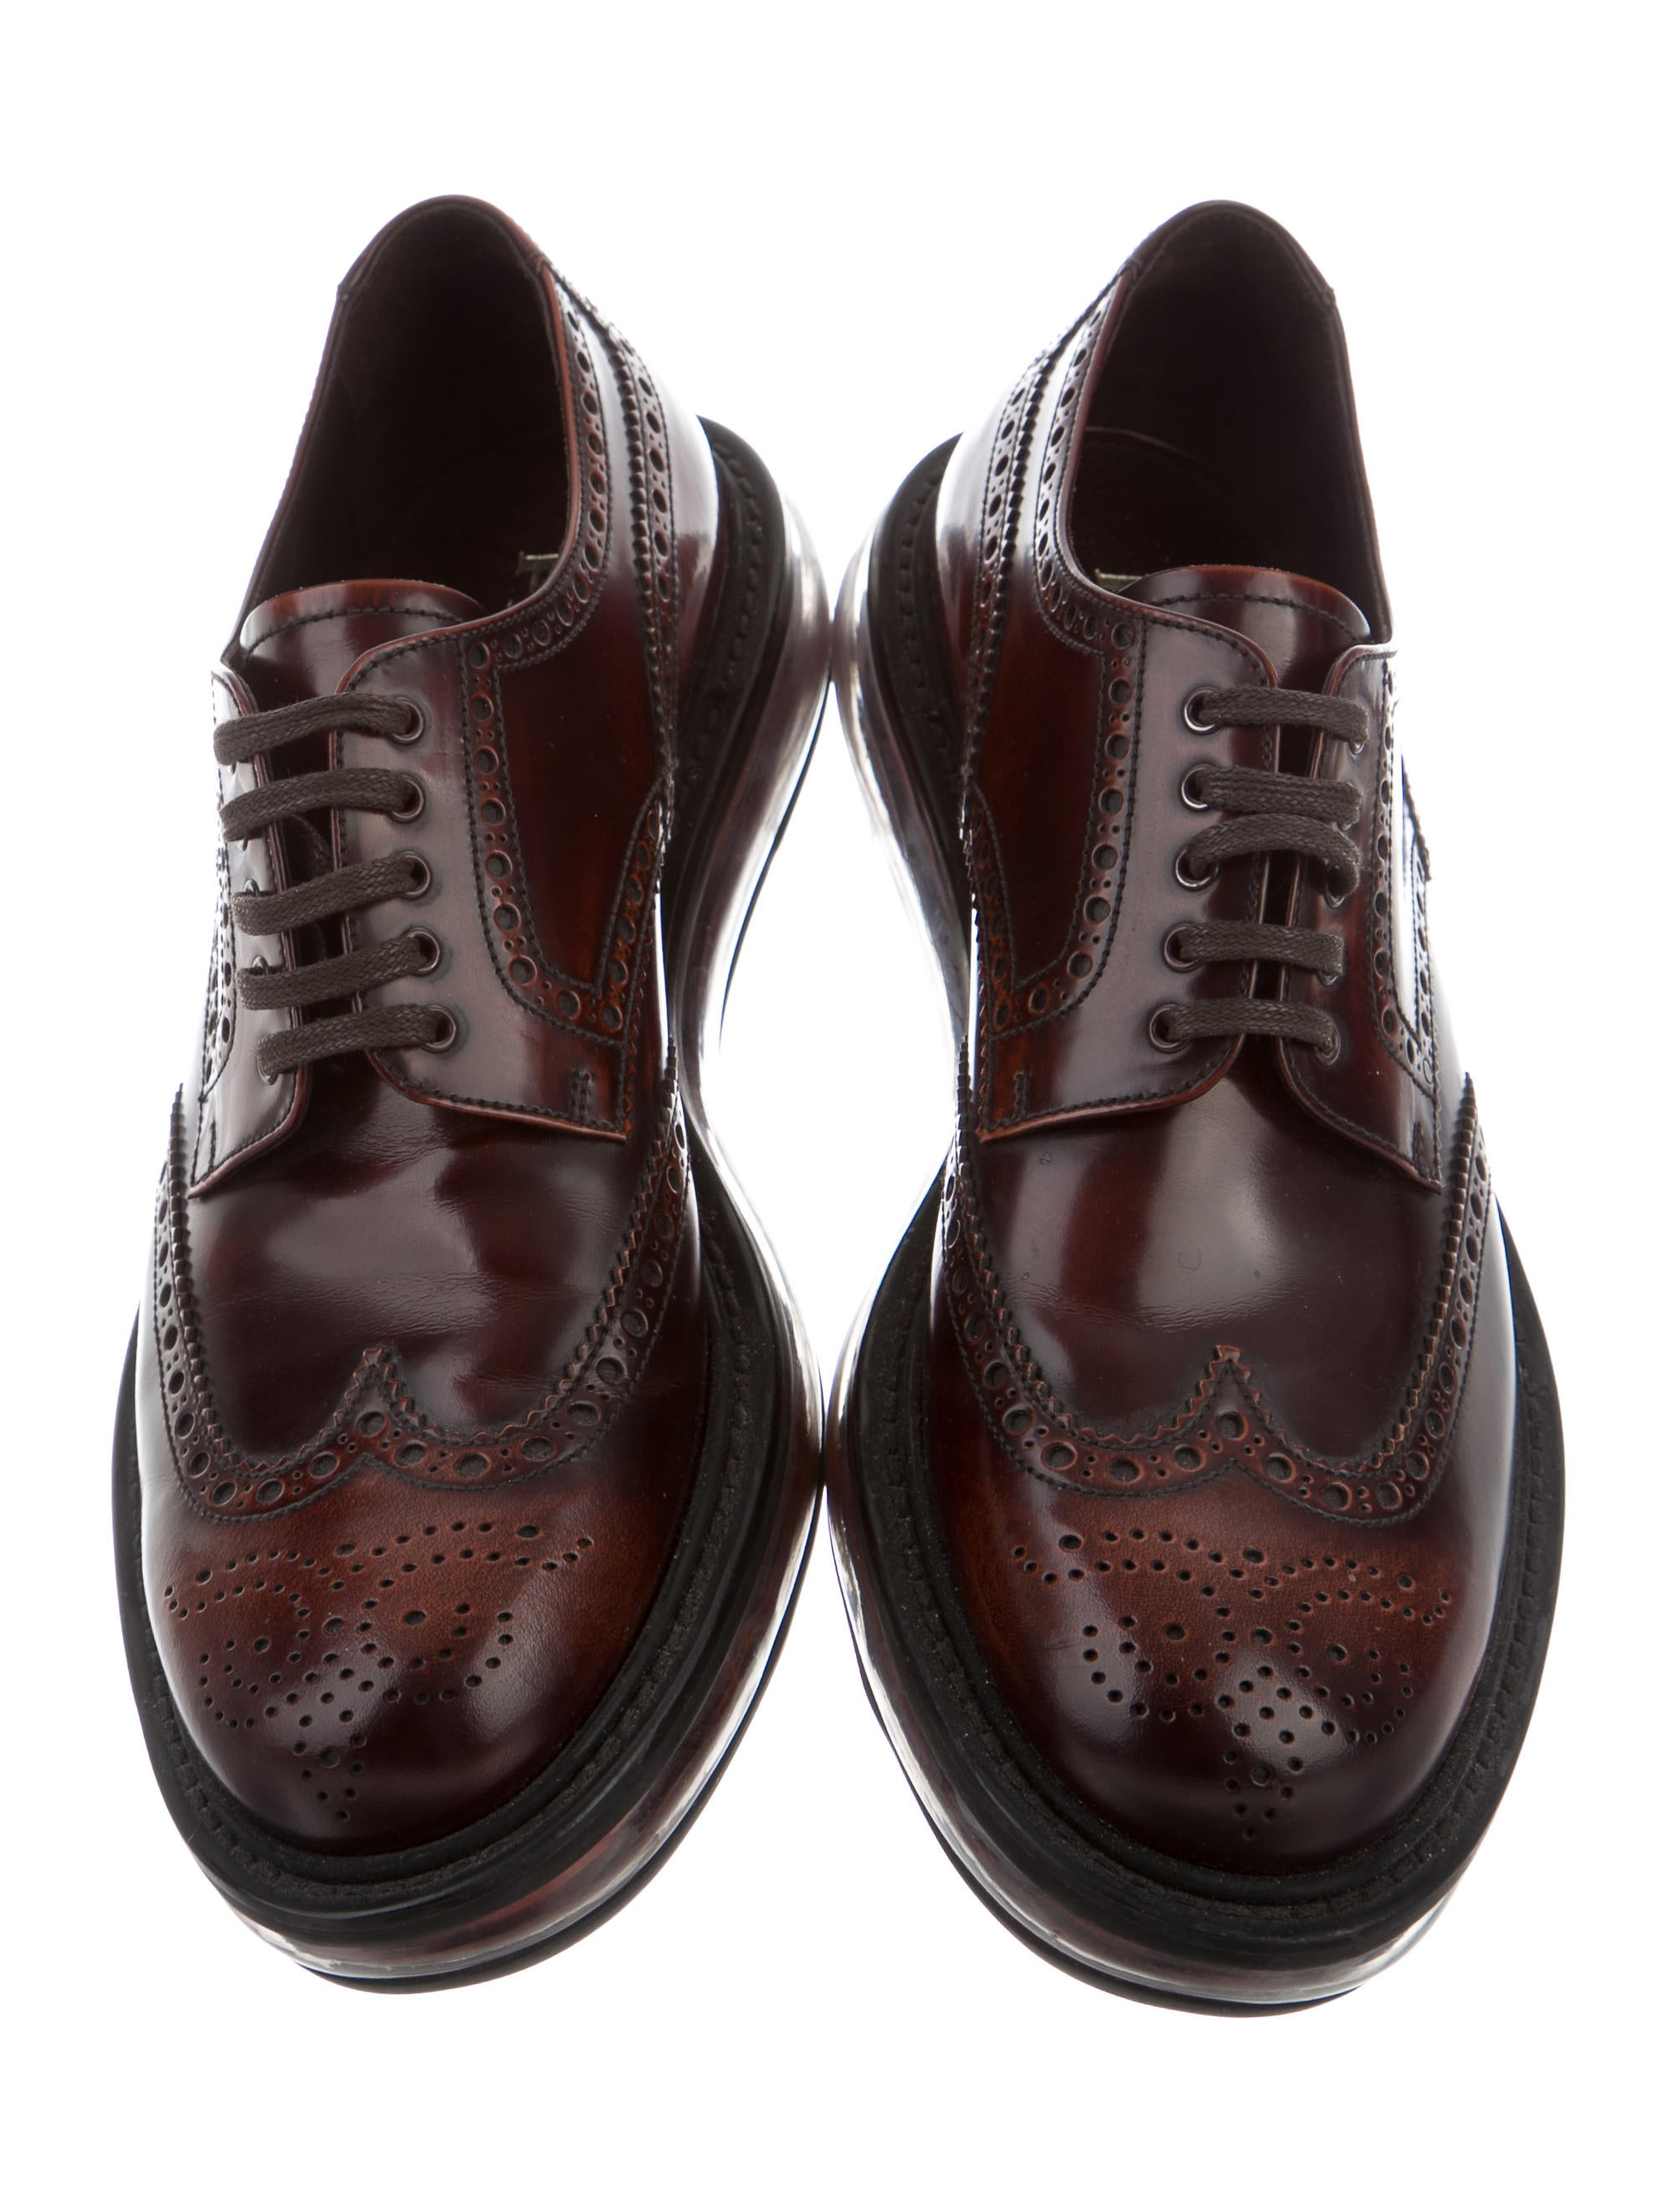 Classic and stylish design, this is a vintage oxford leather shoes for men, Plain toe & lace up style, nice genuine cow leather upper,comfortable out sole. This Italian fashion men dress shoes provide the ideal balance between simplicity and fancy decorations.5/5(3).